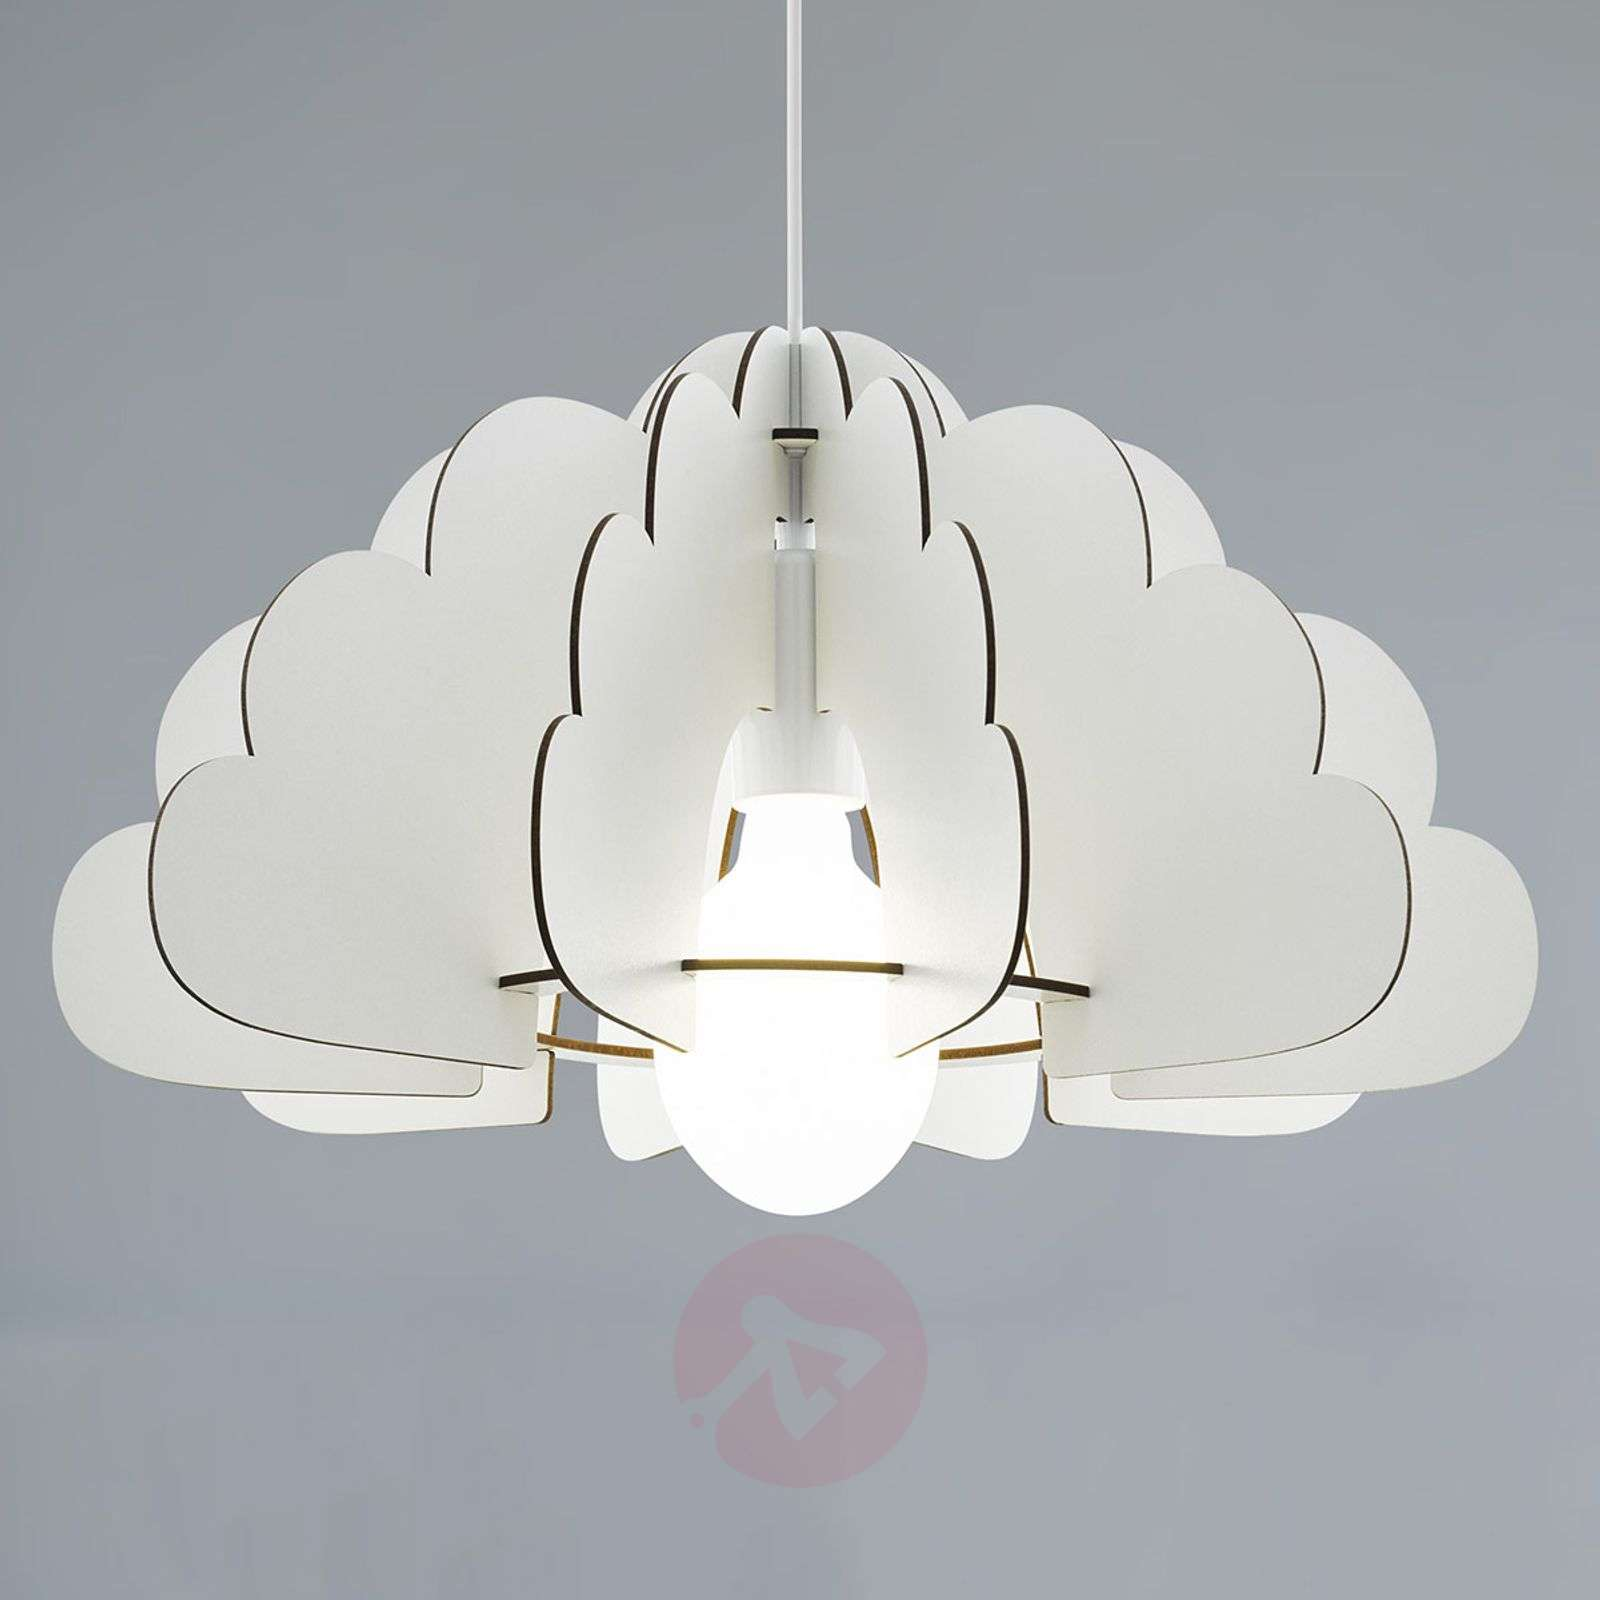 Hanglamp Chieti in wolkendesign, wit-3032308-01